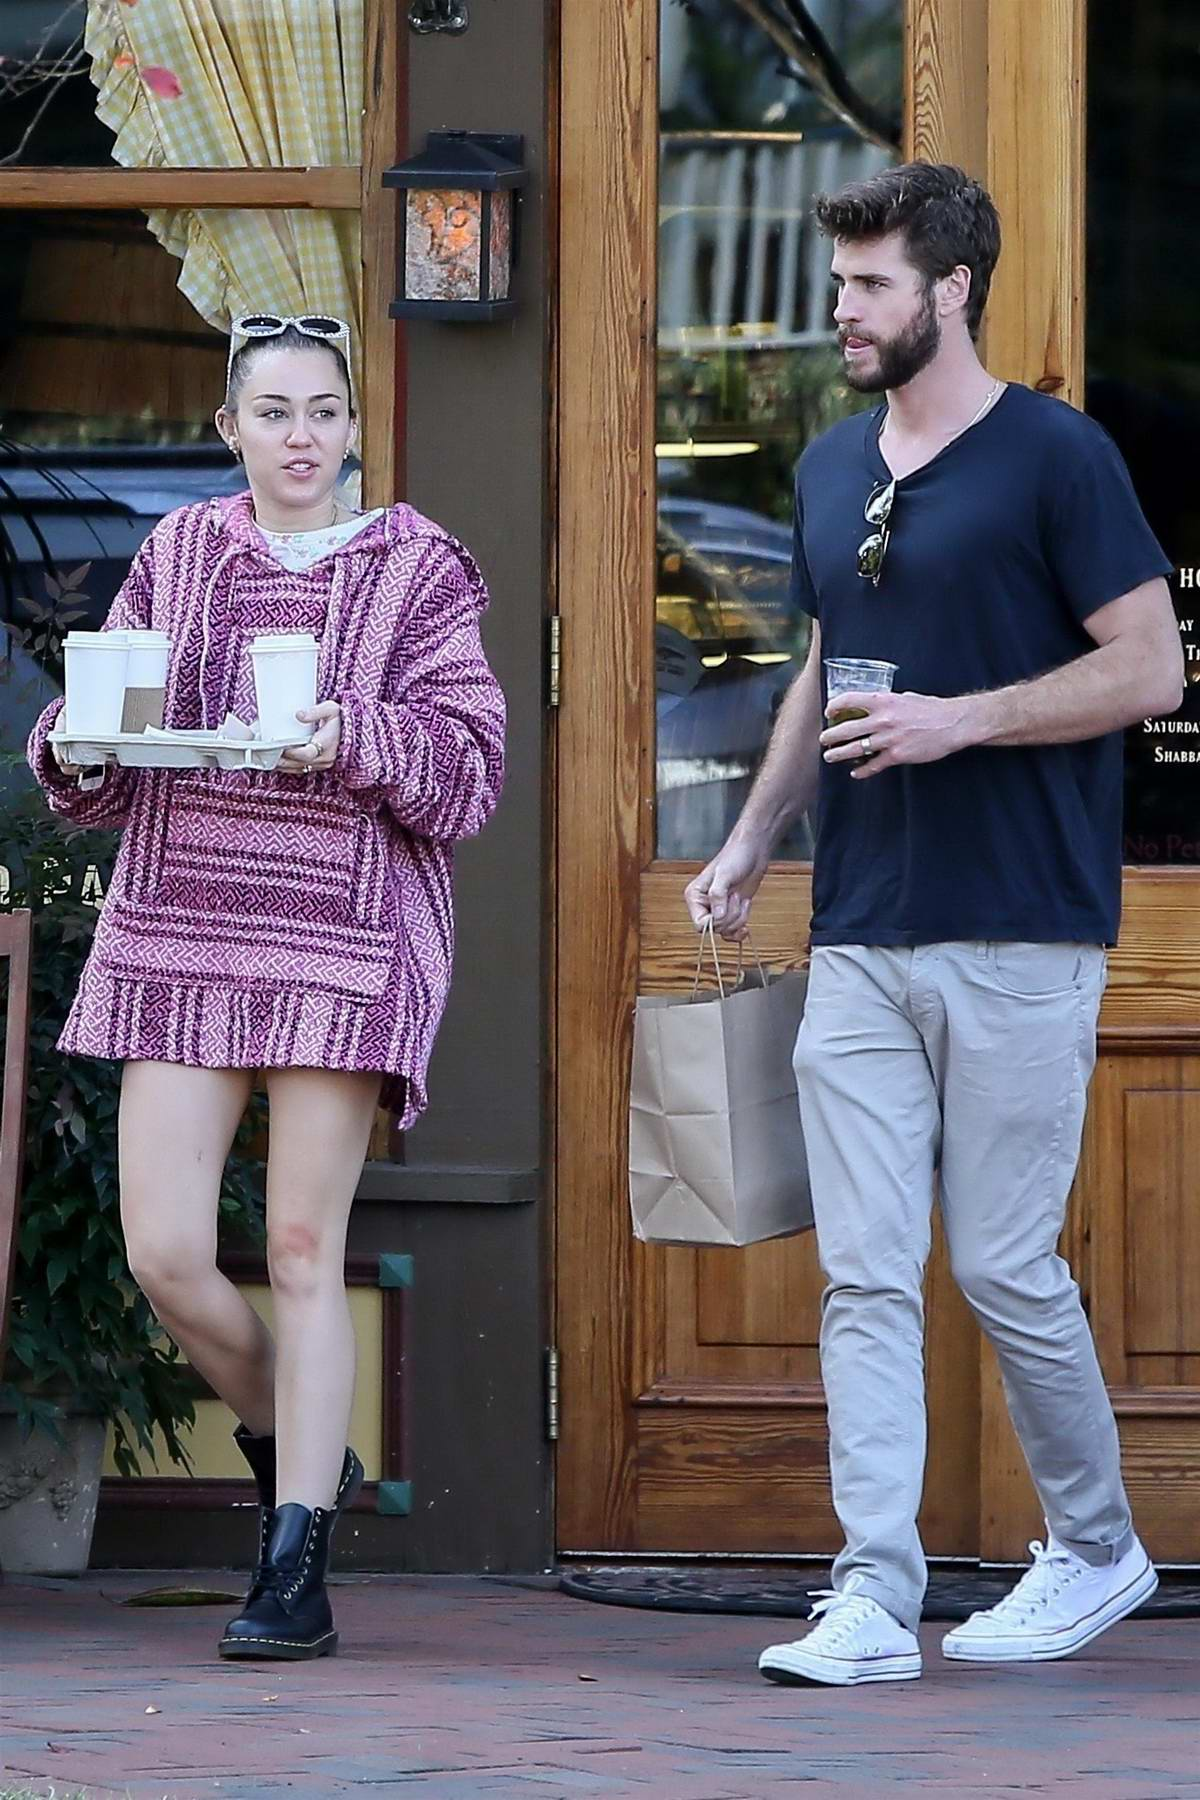 Miley Cyrus and Liam Hemsworth picking up coffee to go in Savannah, Georgia